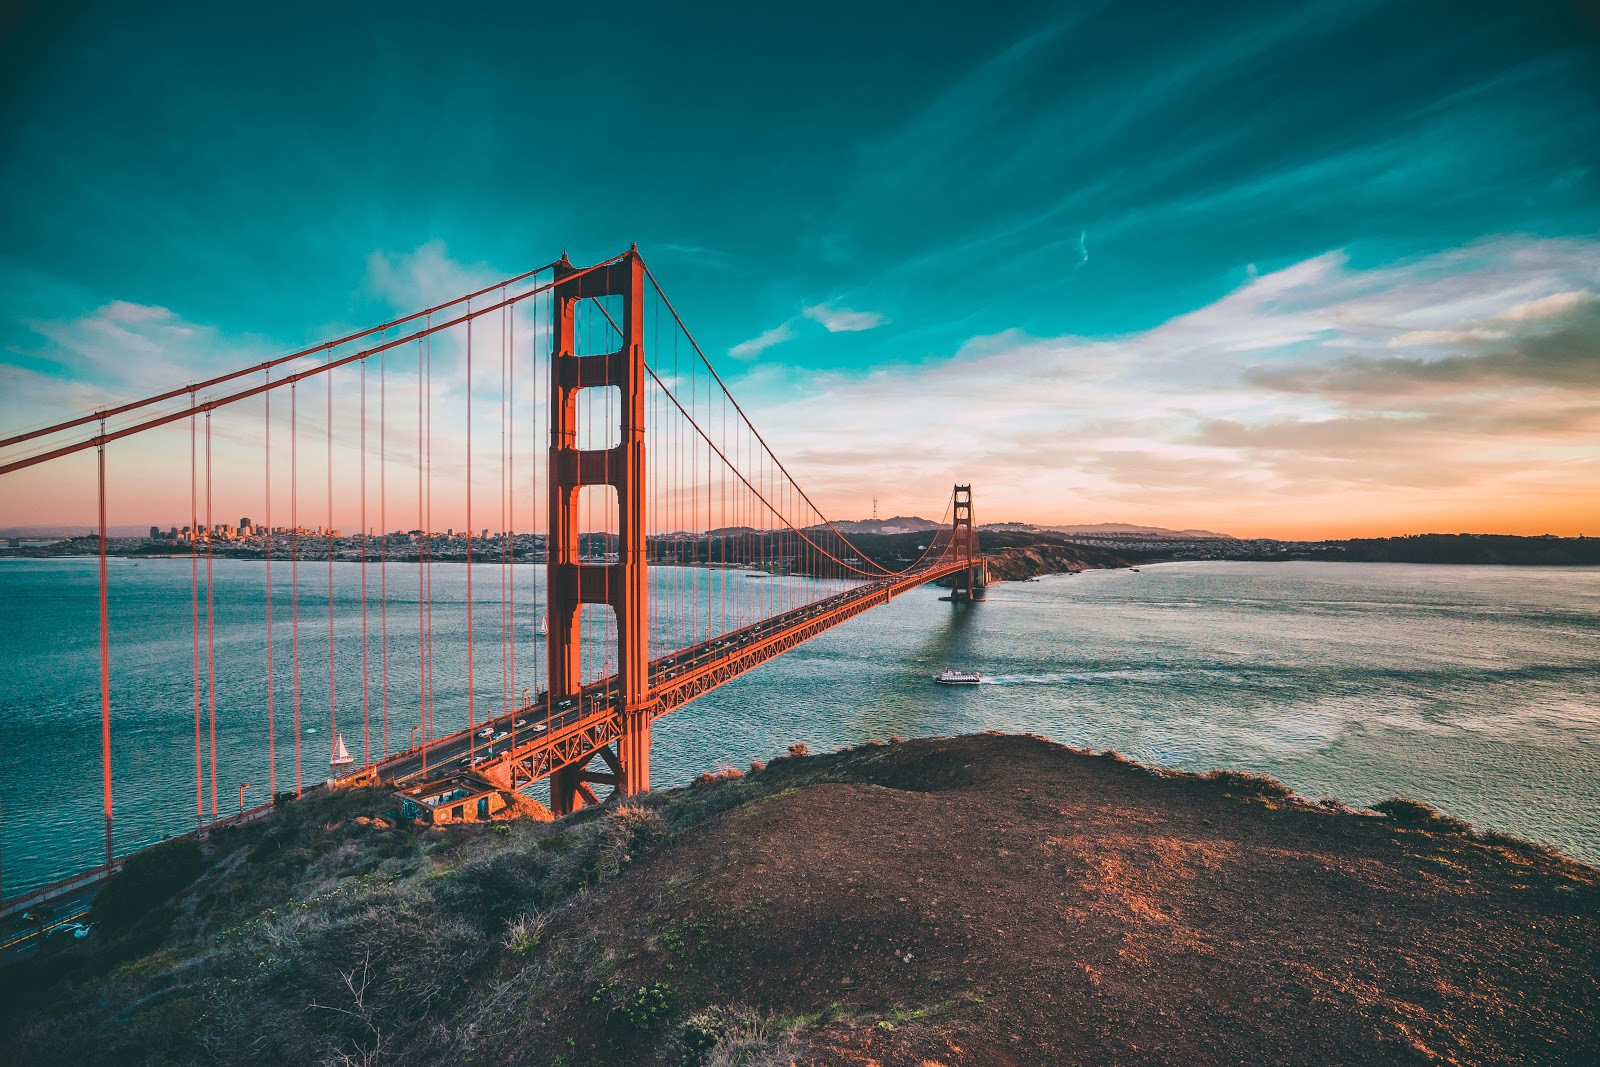 Let's Talk Oracle OpenWorld 2019